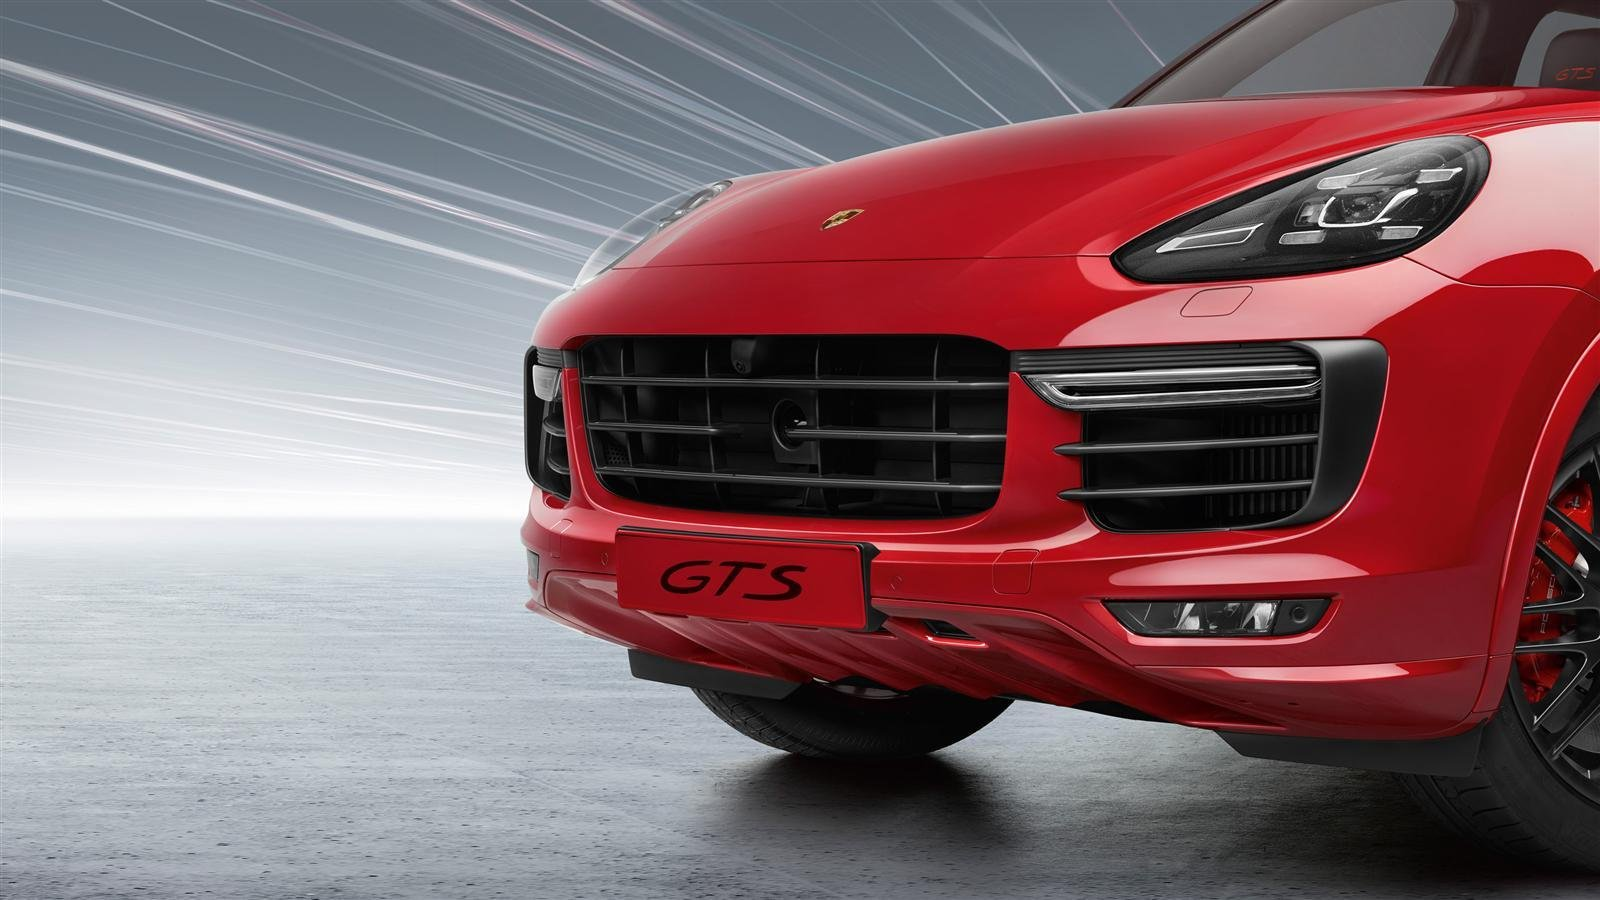 2015 porsche cayenne gts picture 576237 car review top speed. Black Bedroom Furniture Sets. Home Design Ideas